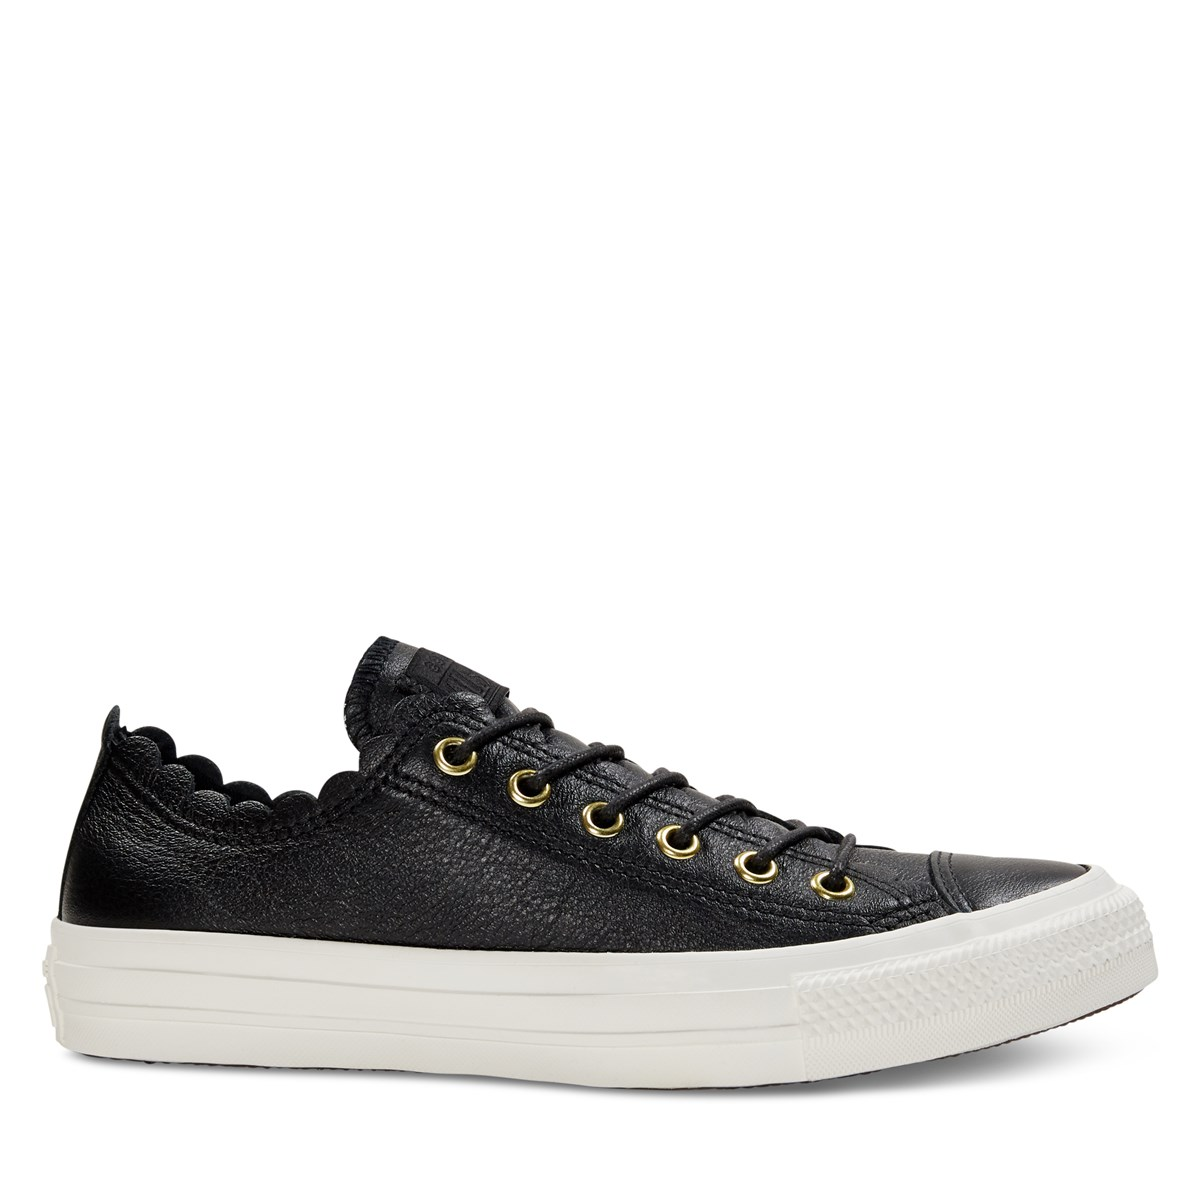 Women's Chuck Taylor All Star Low Top Leather Sneakers in Black